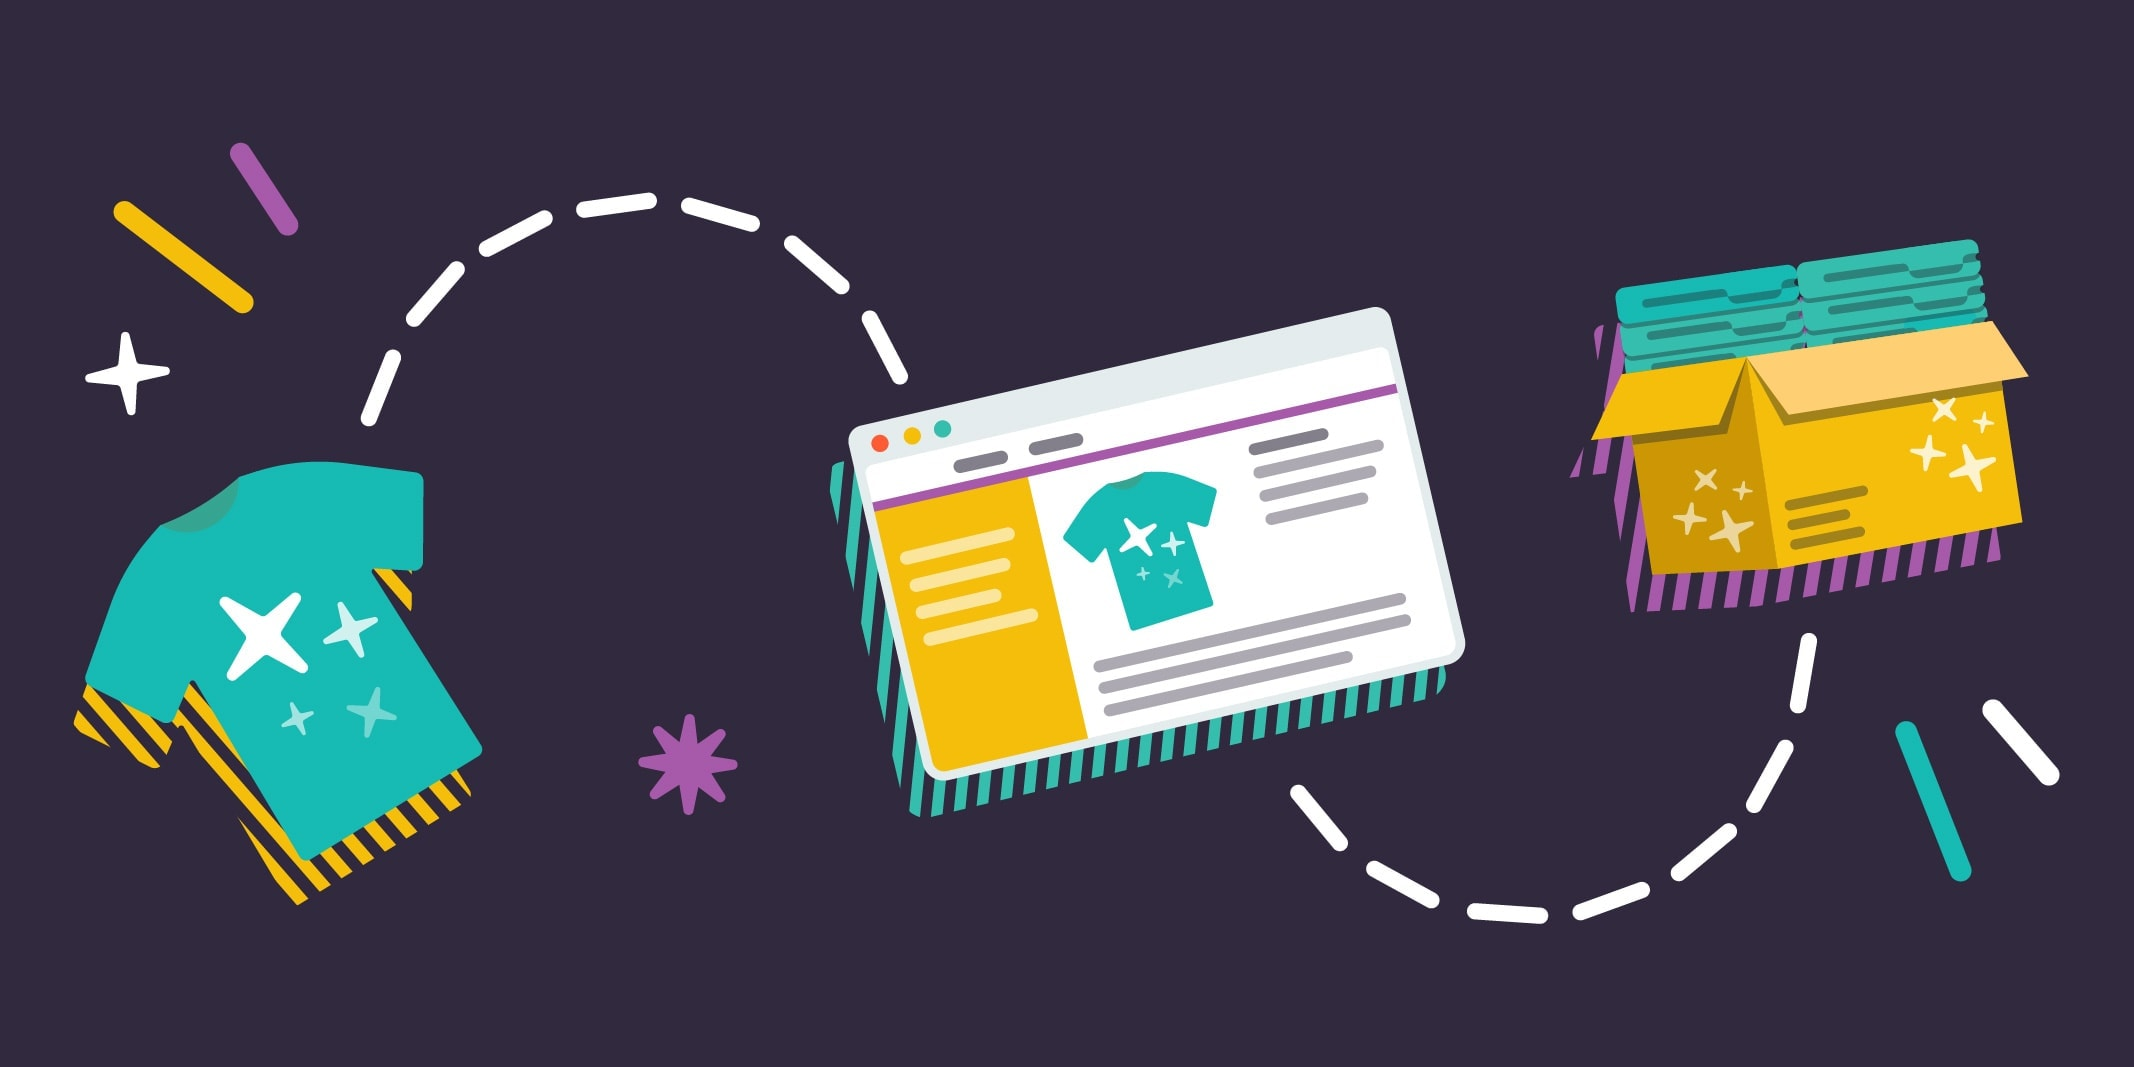 How to Start a Print-on-Demand Business in 5 Steps